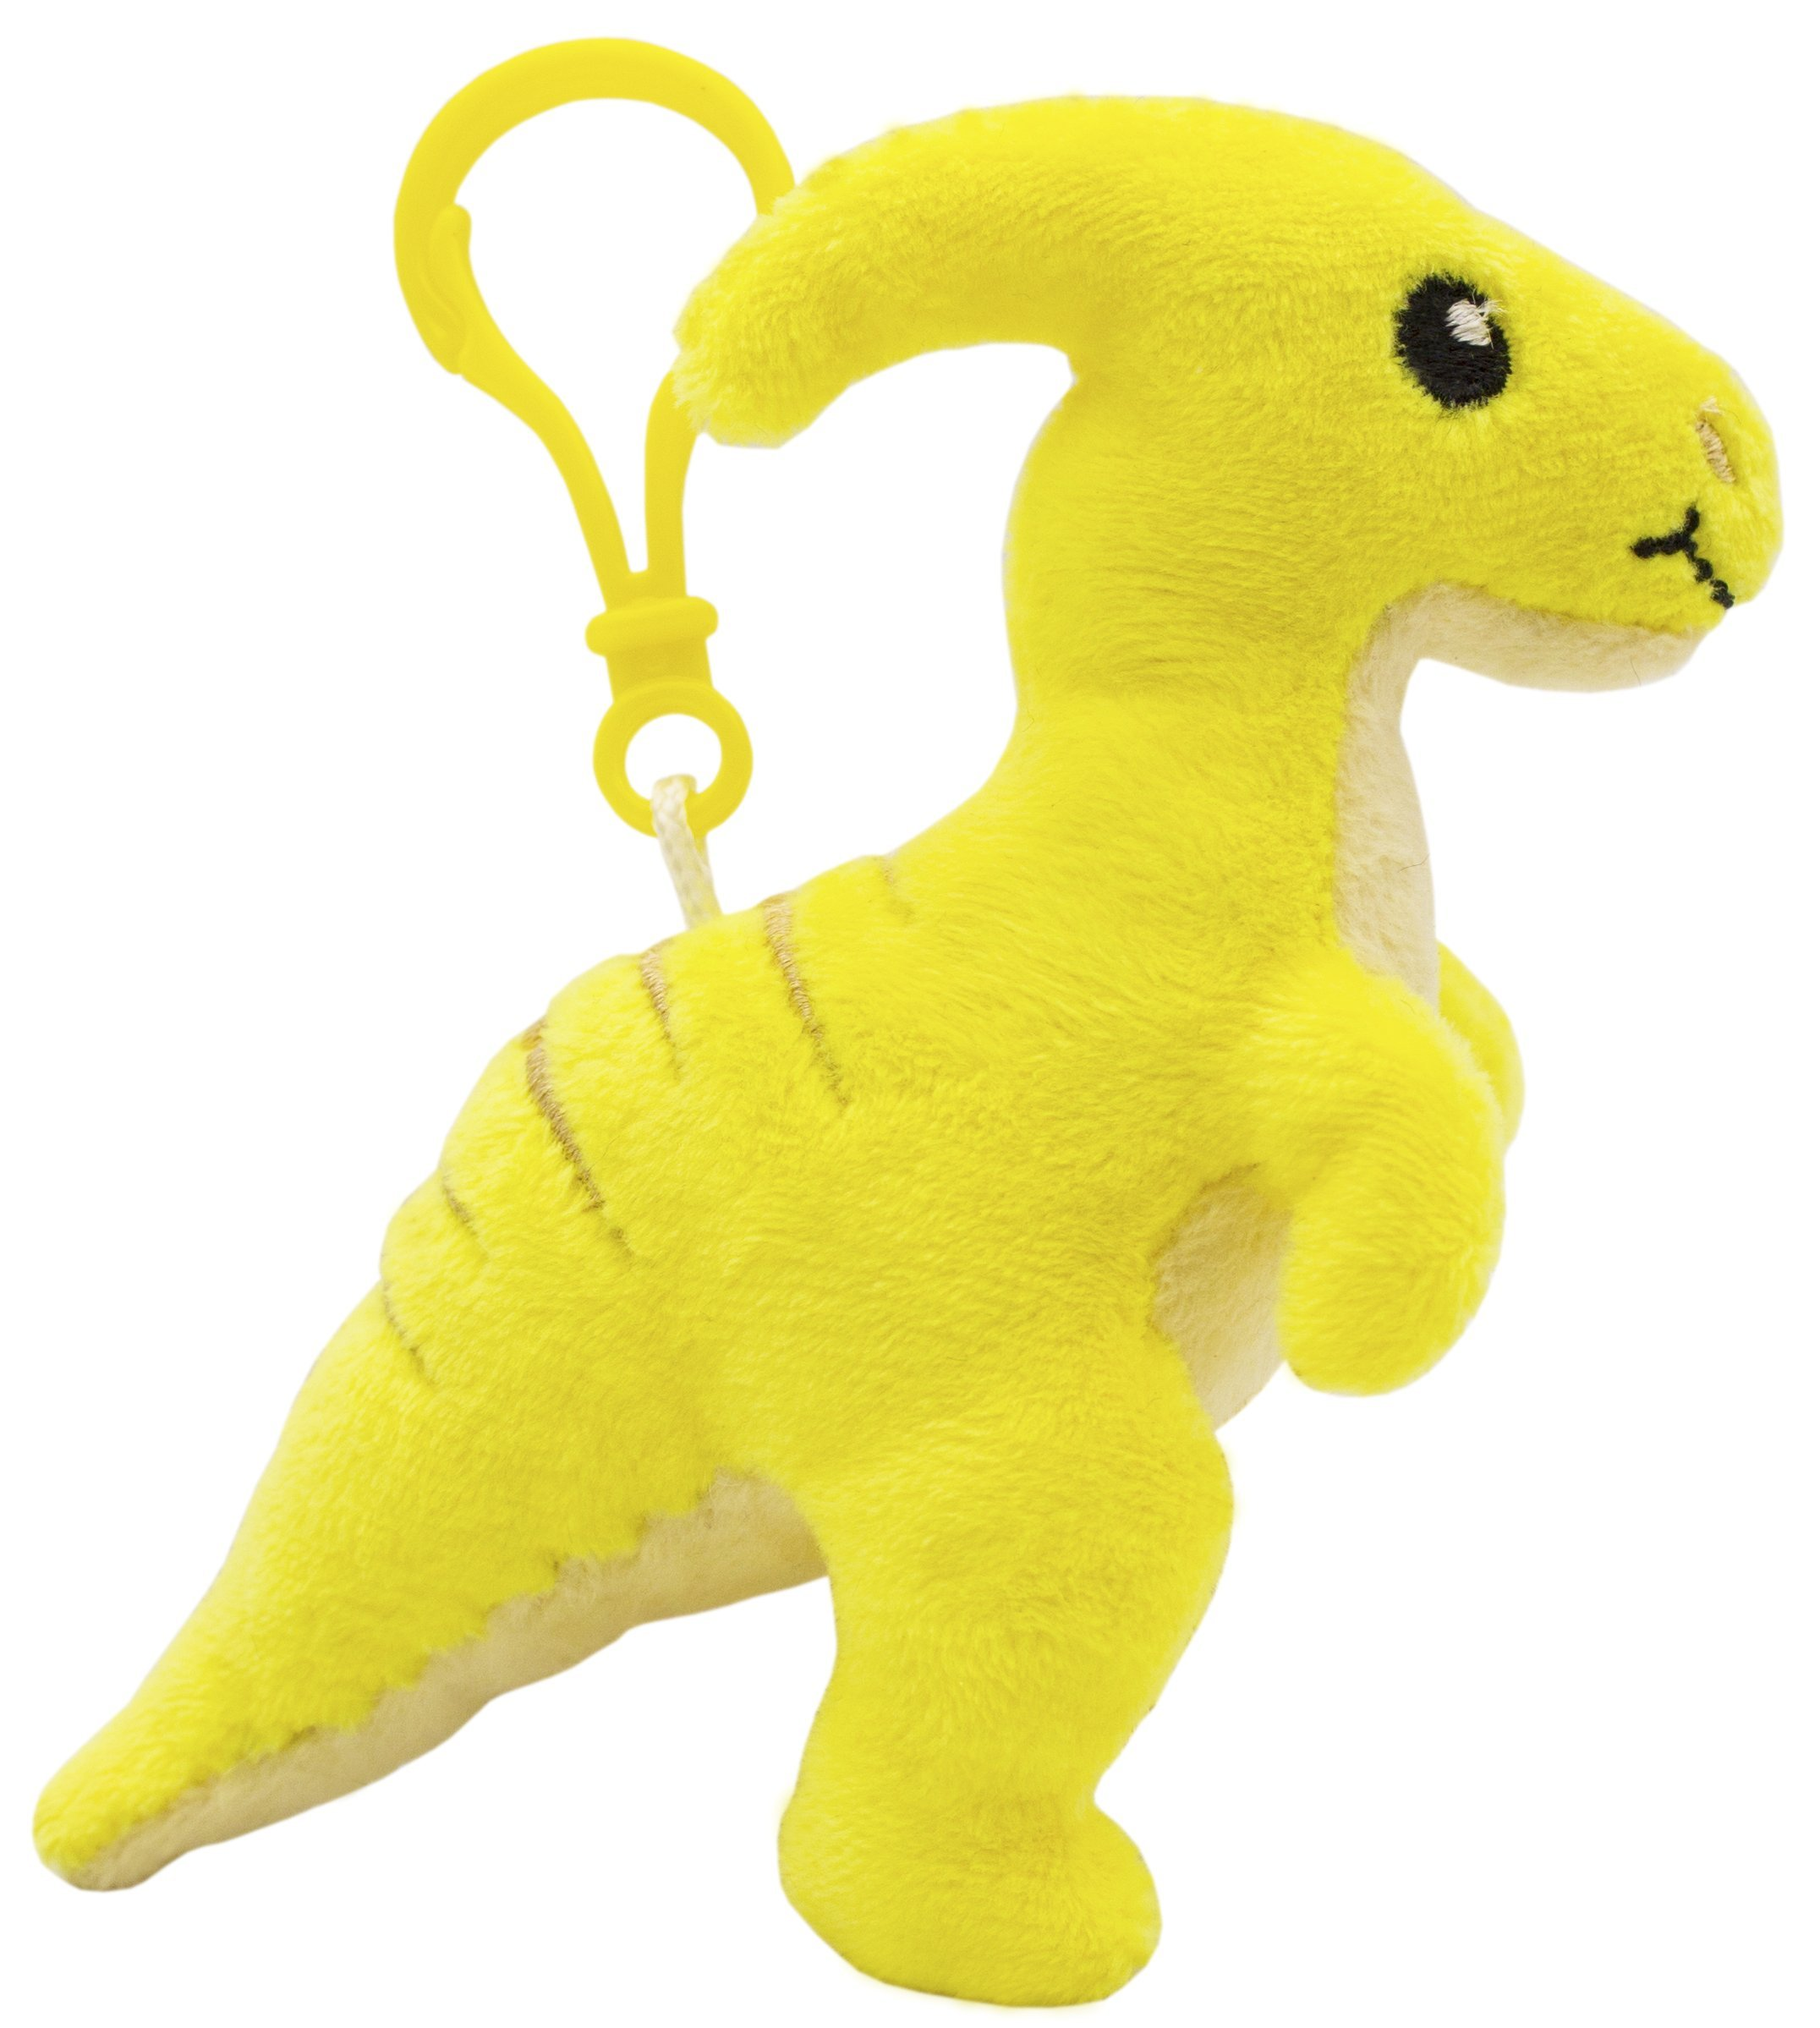 Scentco Dino Dudes Backpack Buddies - Scented Plush Toy Dinosaur Clips - Parasaurolophus Pineapple